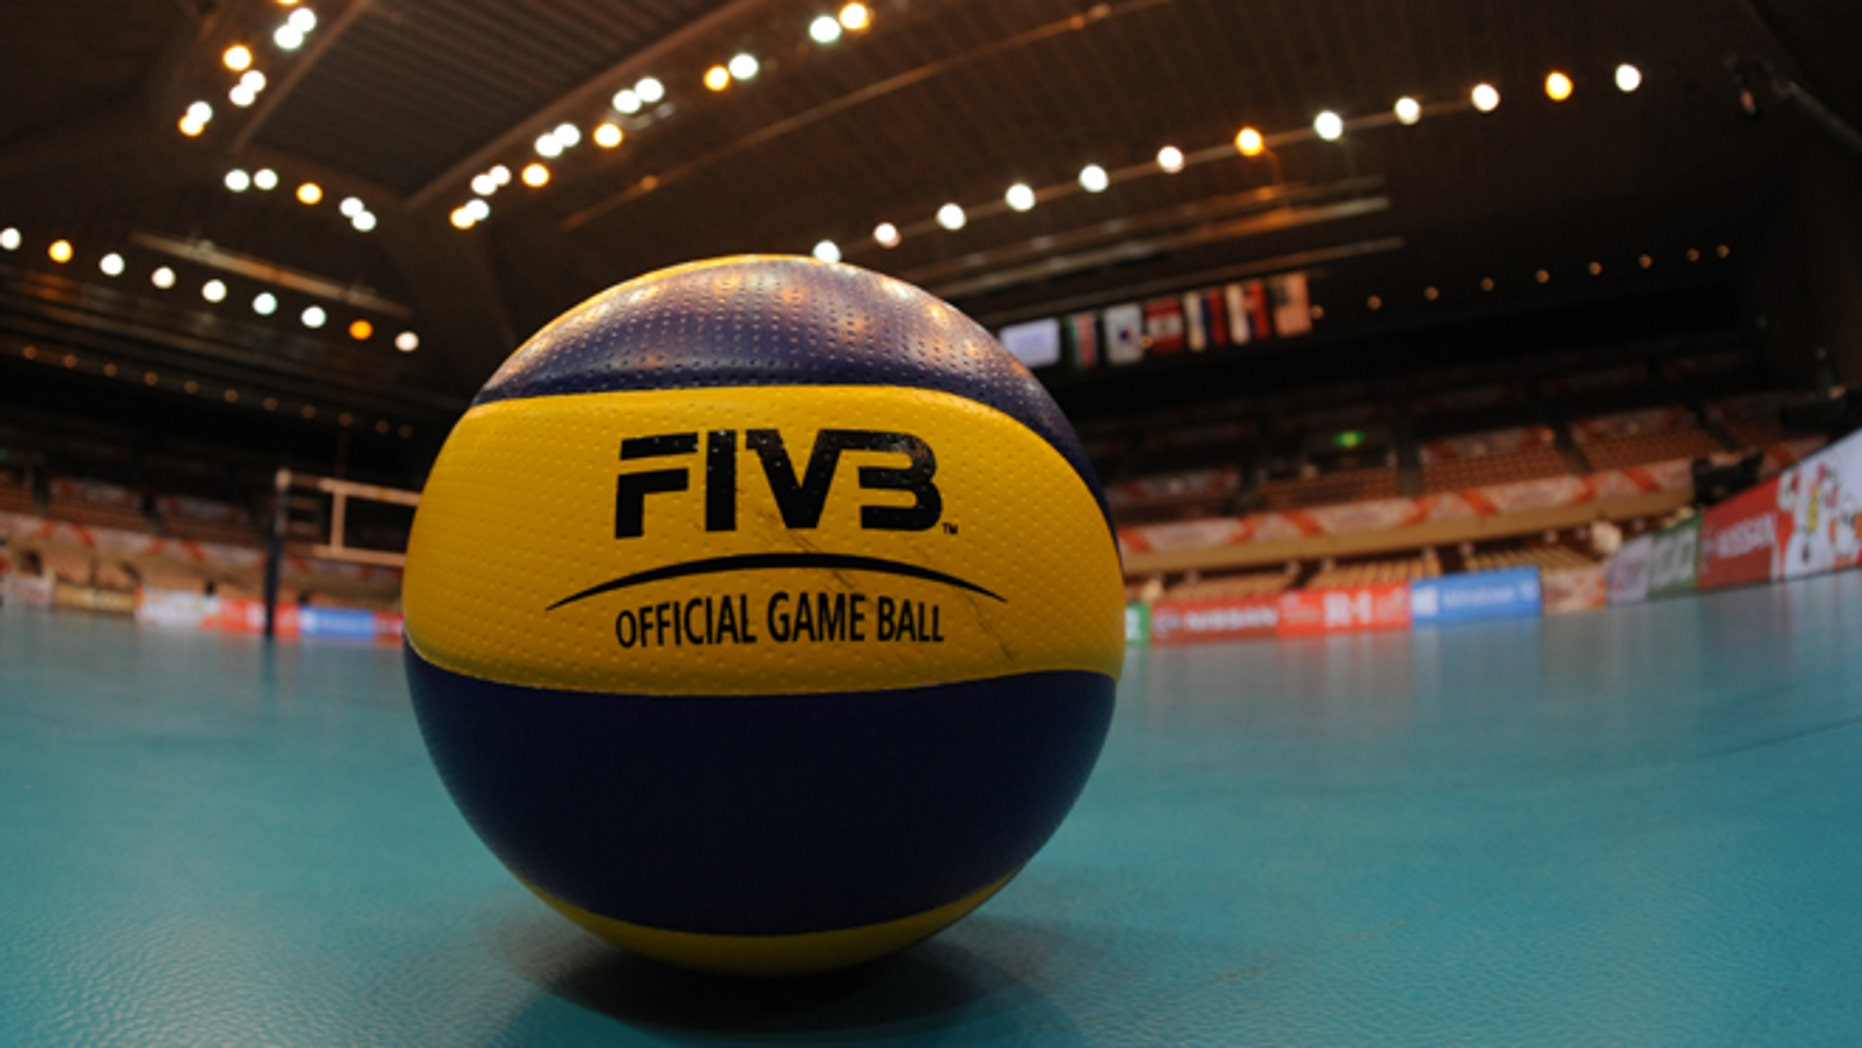 SENDAI, JAPAN - AUGUST 30:  Official boal on the court before the match between Dominican Republic and Serbia during the FIVB Women's Volleyball World Cup Japan 2015 at Sendai City Gymnasium on August 30, 2015 in Sendai, Japan.  (Photo by Masashi Hara/Getty Images for FIVB)